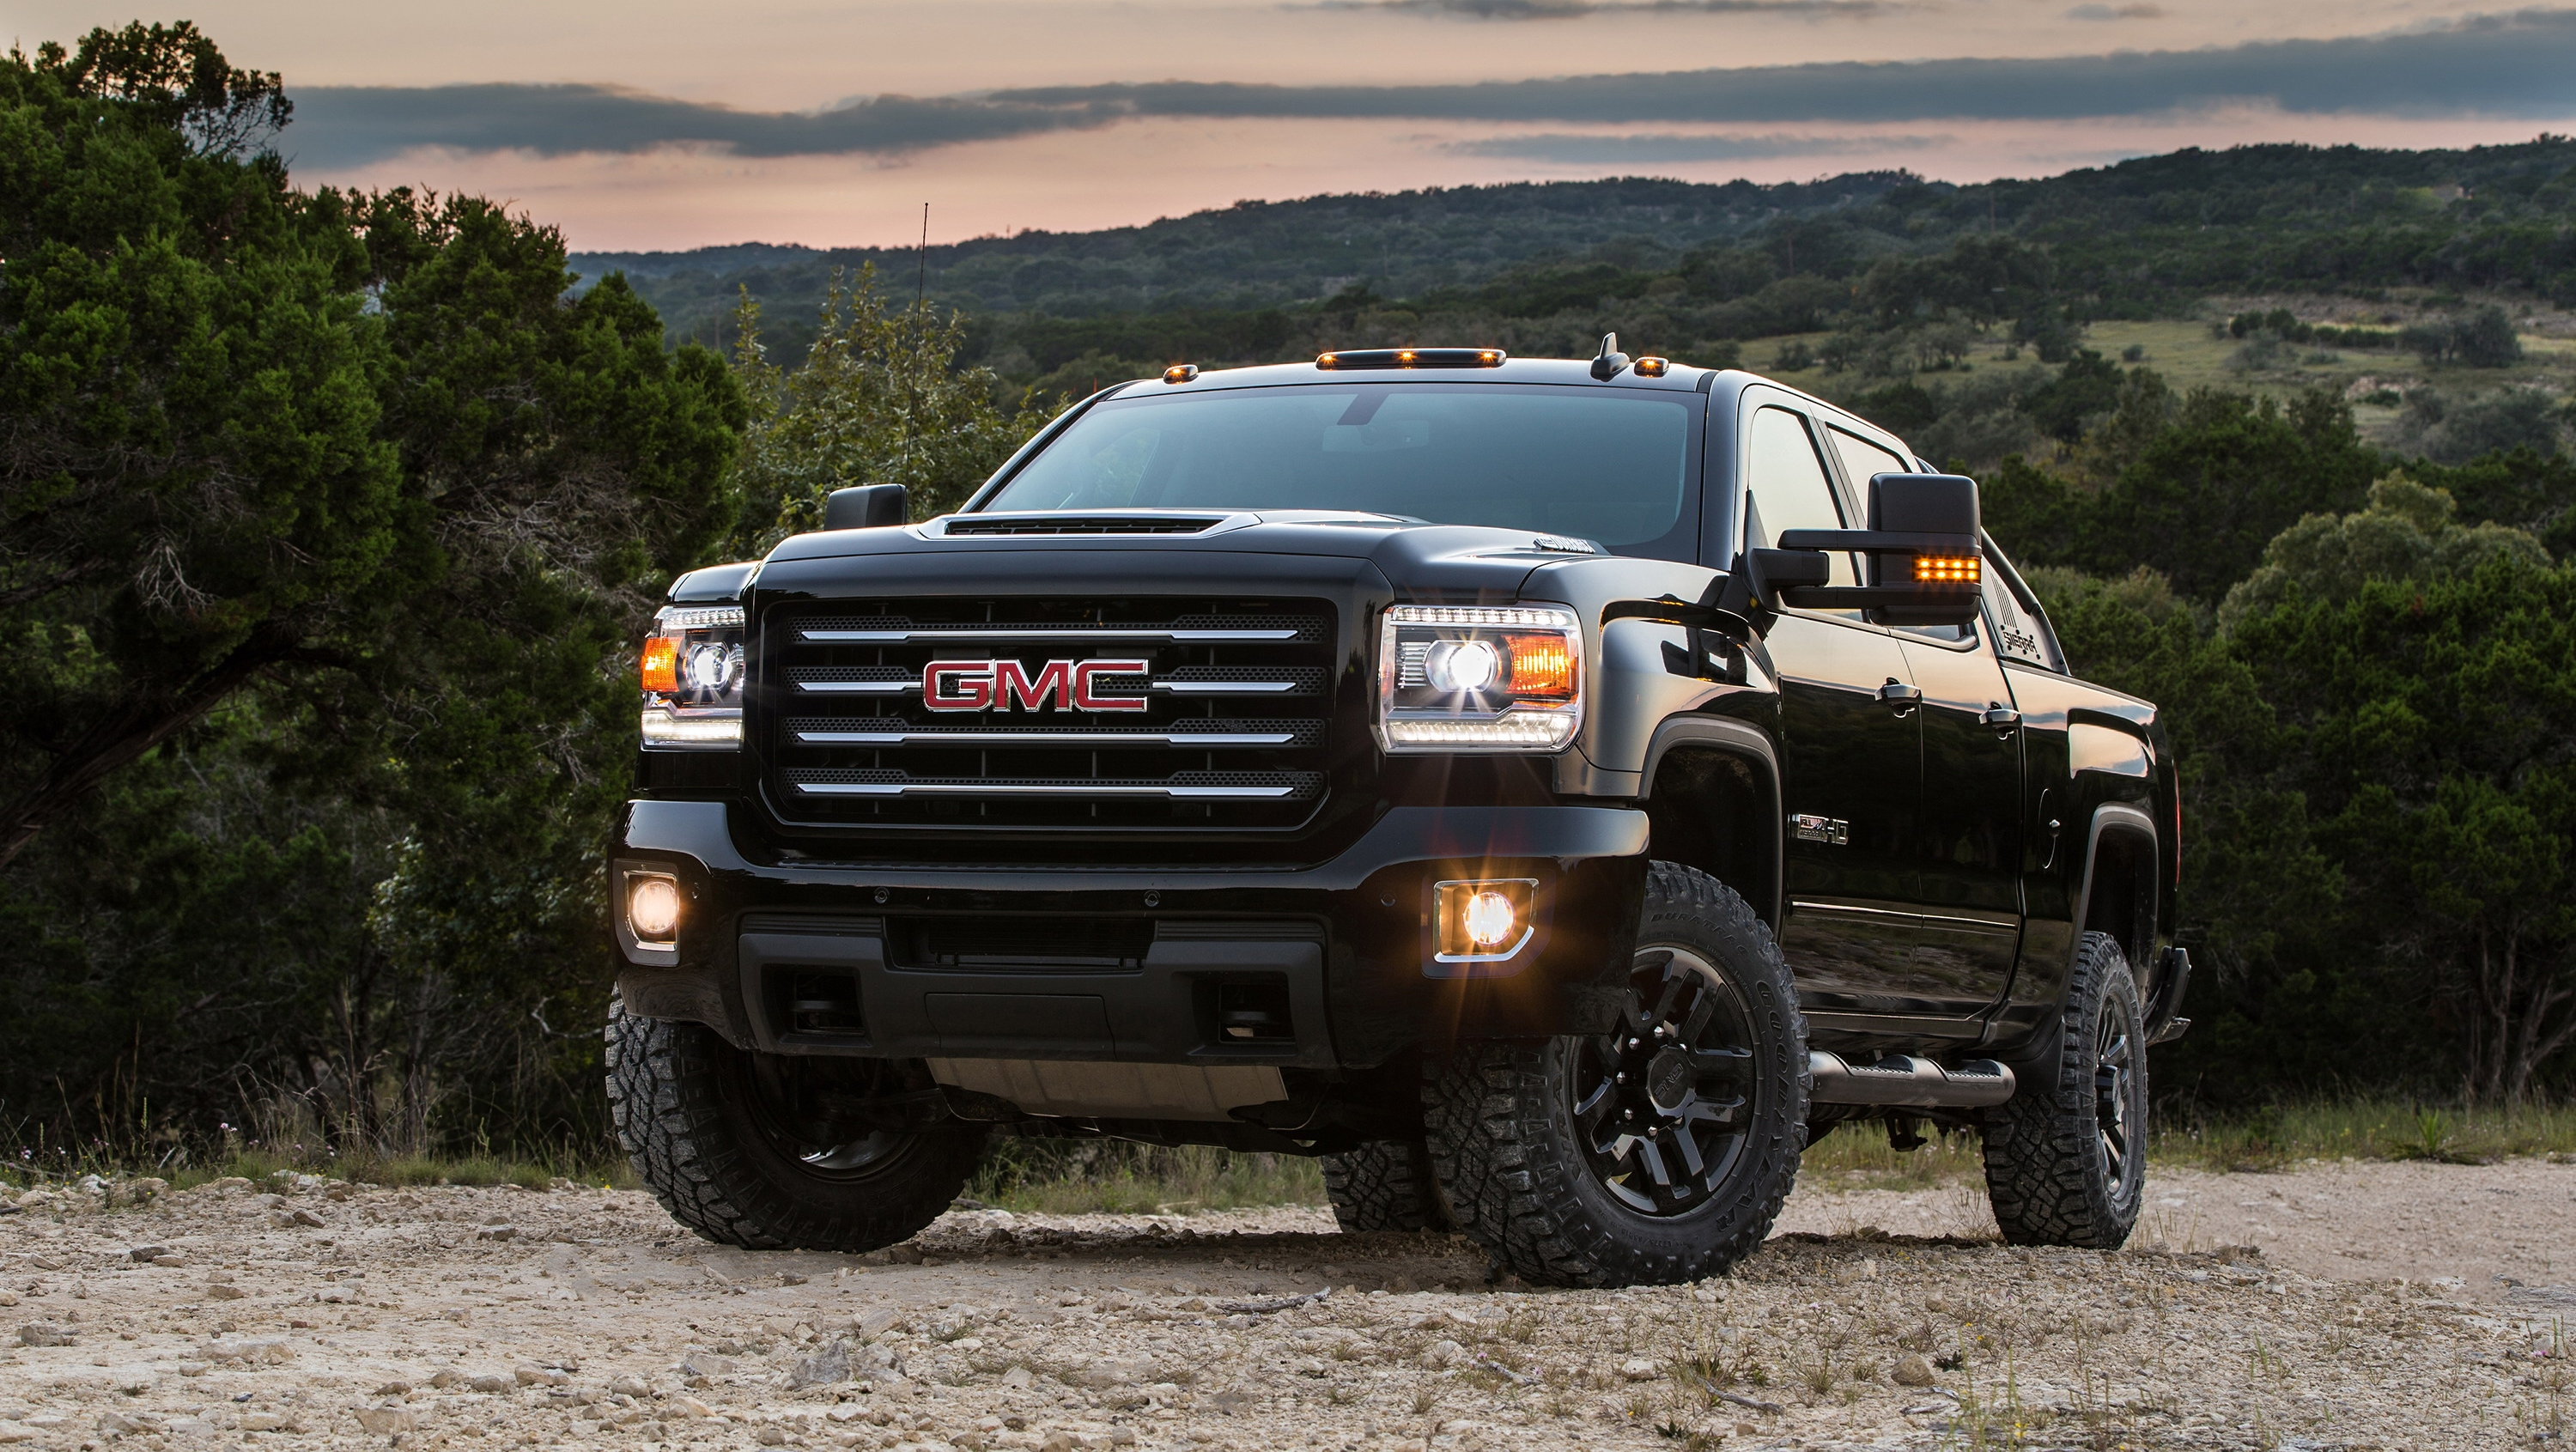 The gmc sierra hd is getting some much needed powertrain updates for the 2017 model year but that s not the only change happening